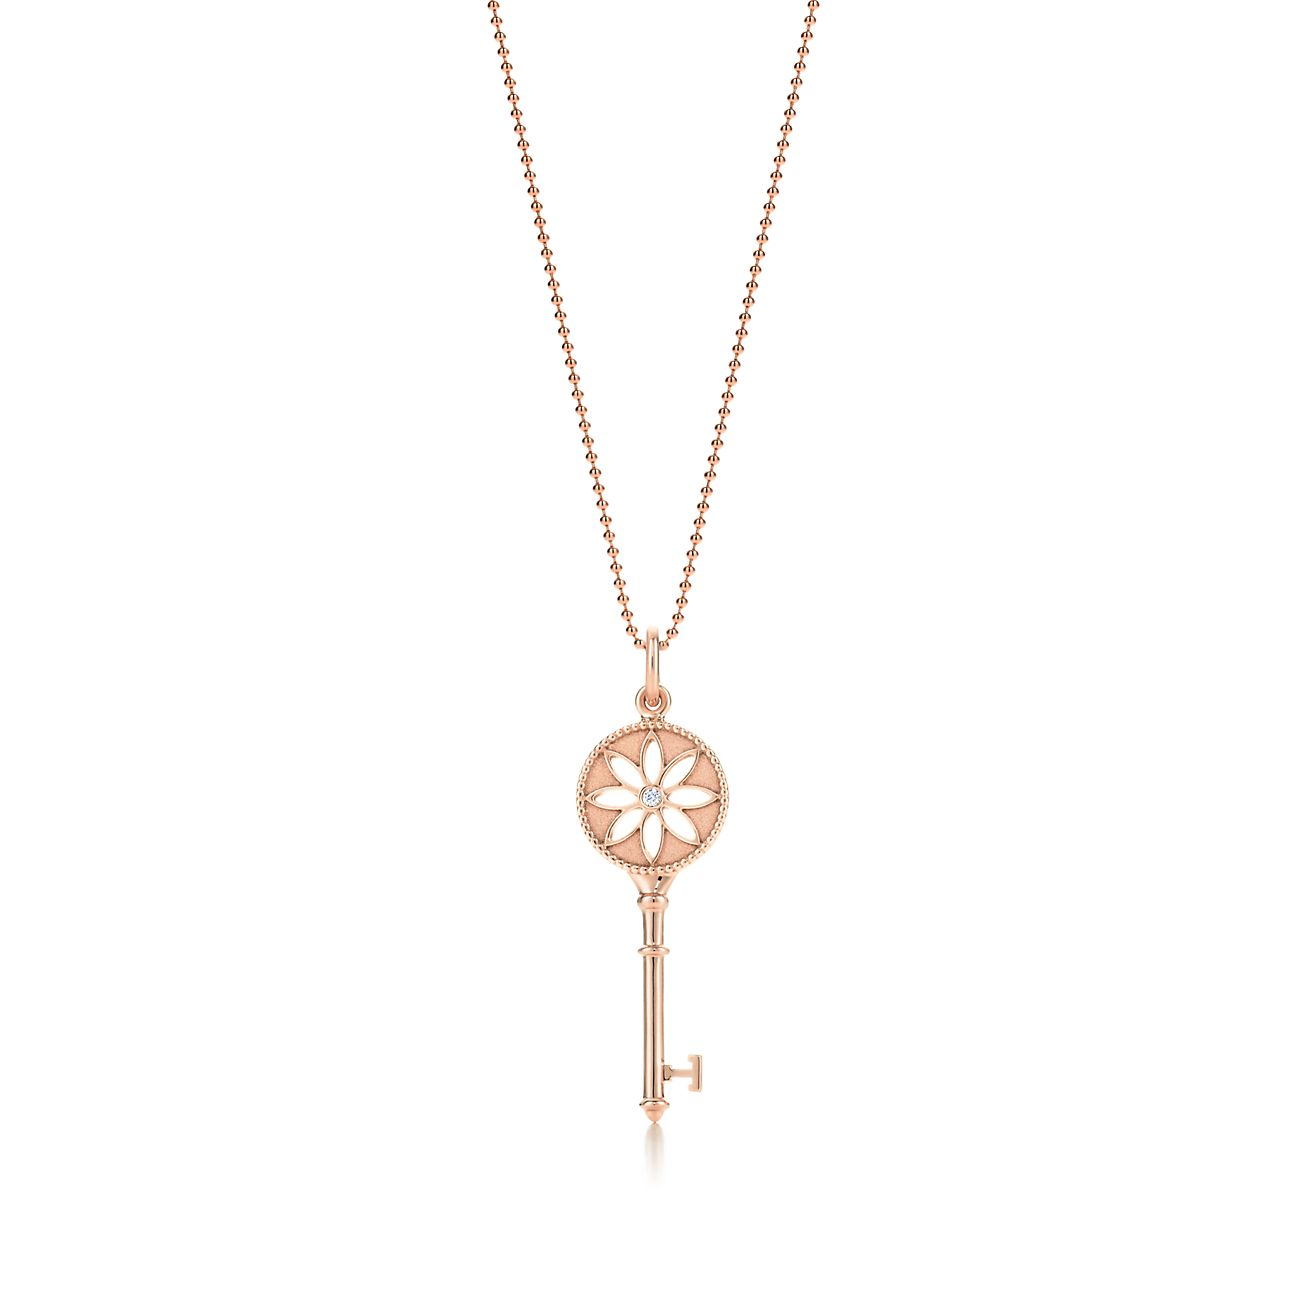 pdp necklace jewelry shopmadewell category p necklaces enlarge madewell pendant daisy